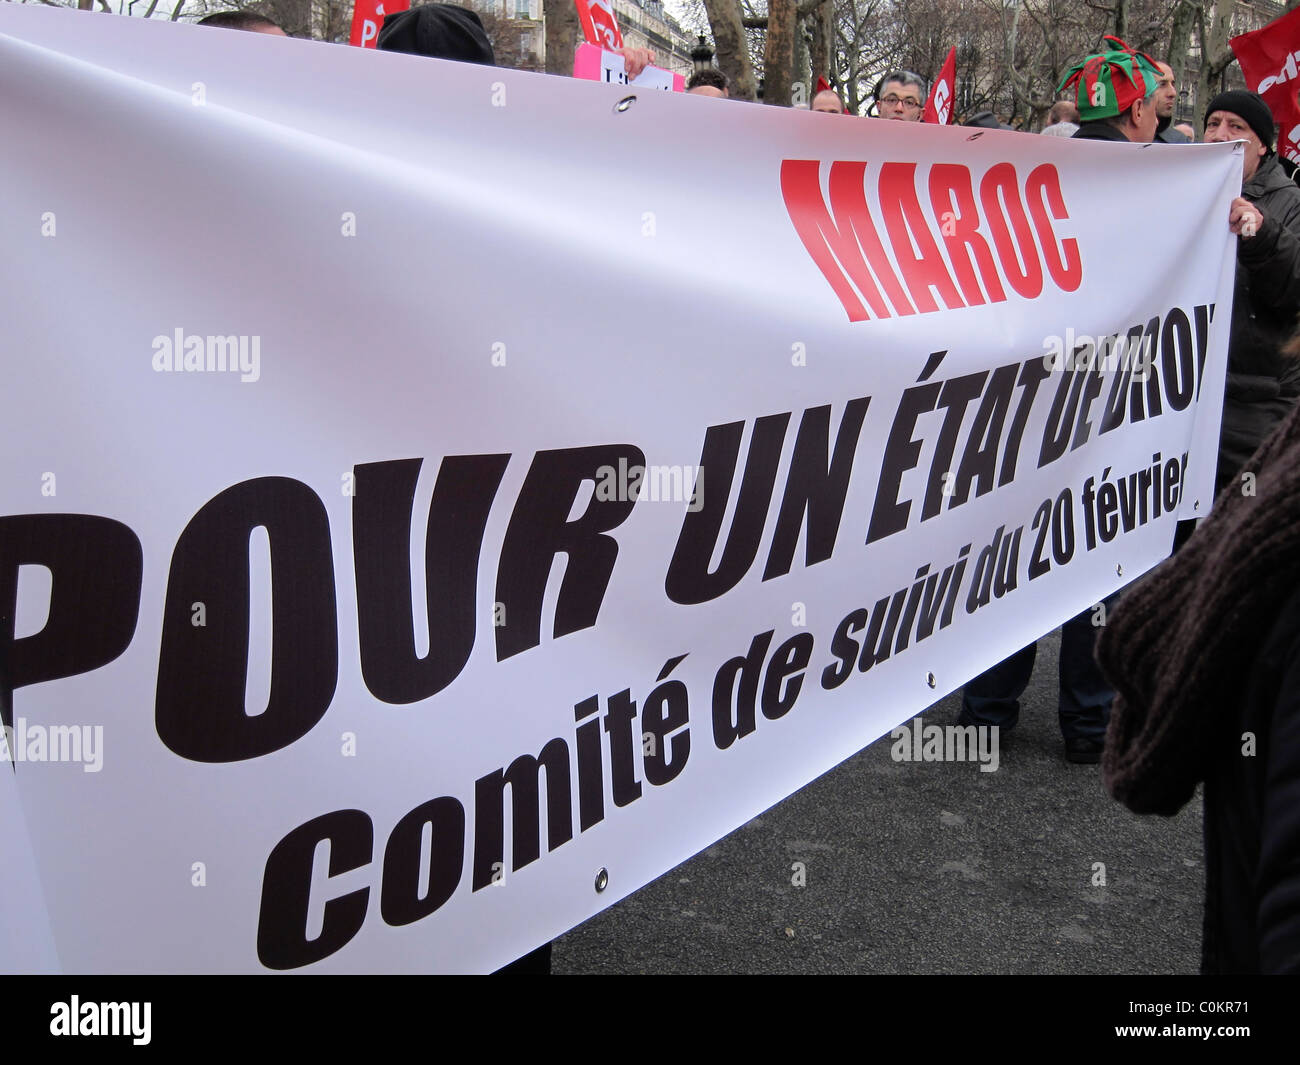 Paris, France, Detail protest Banners at Morocco Demonstration, in Support of Arab Revolutions - Stock Image